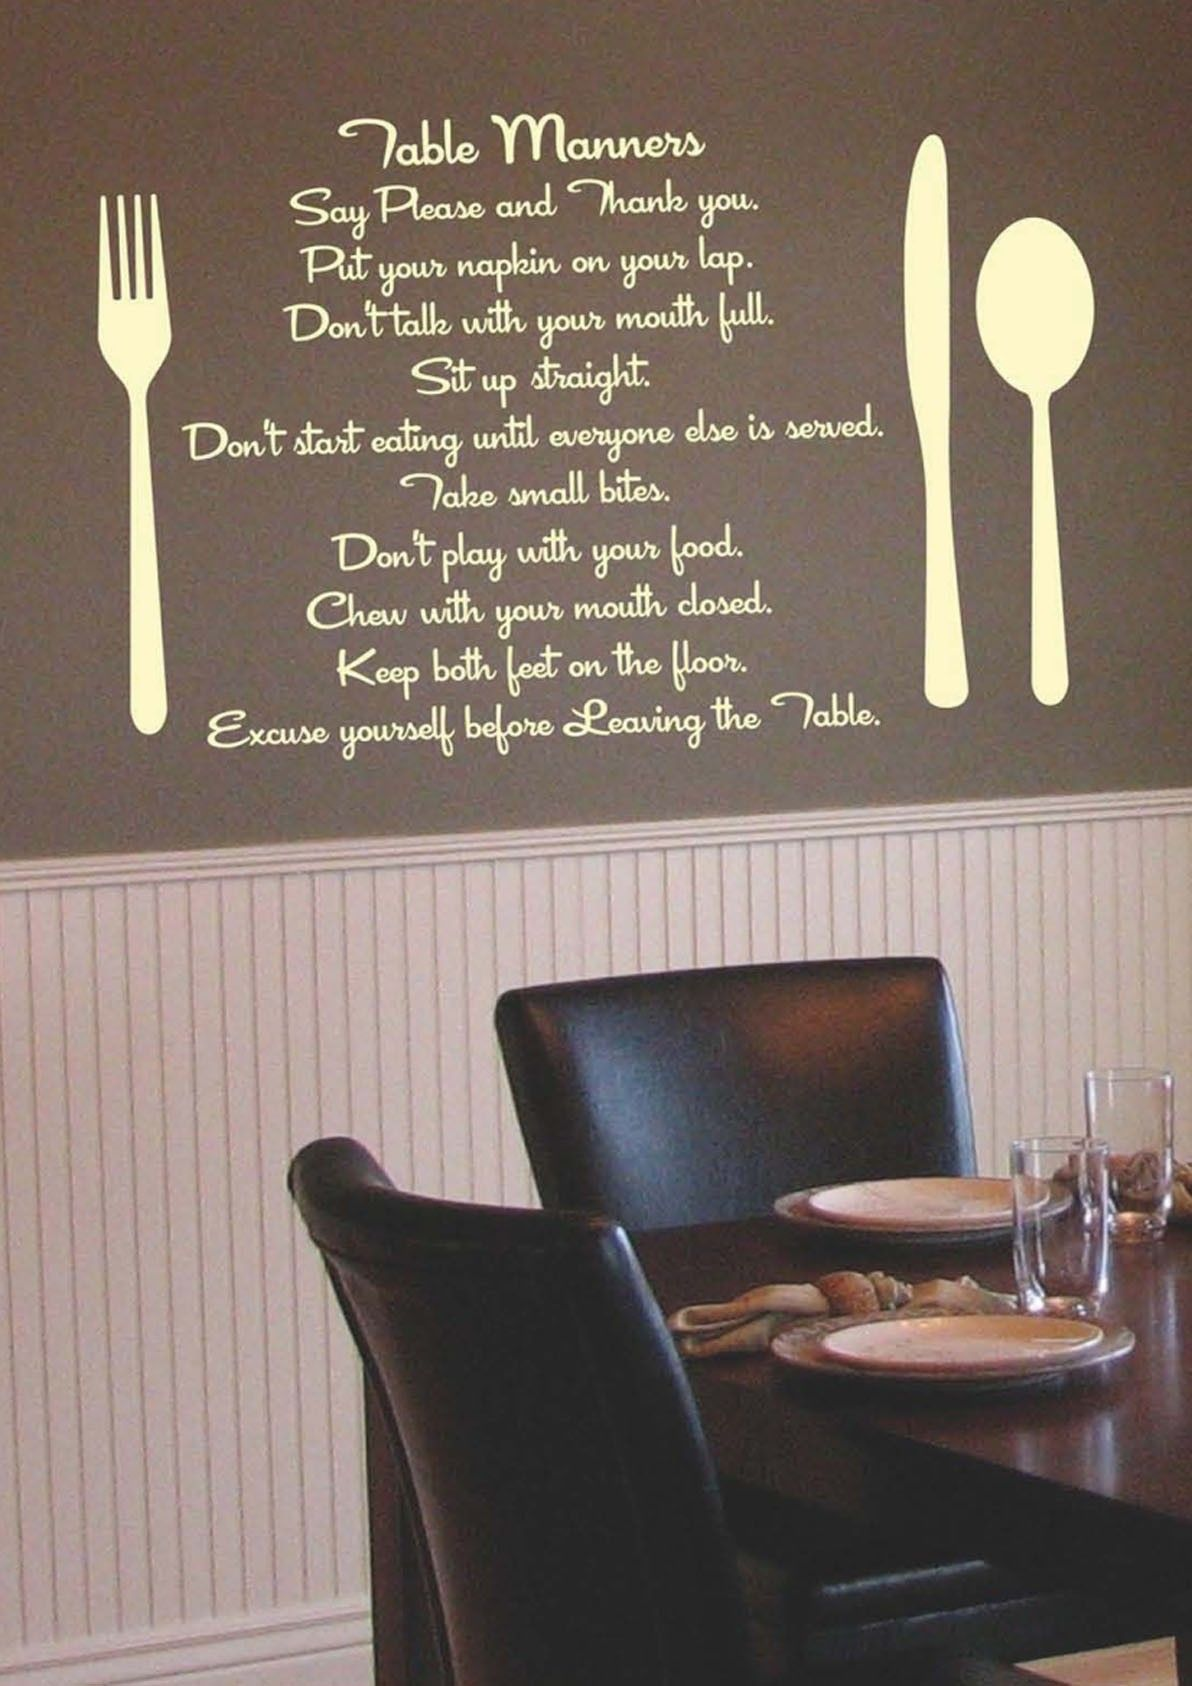 Kitchen Wall Decals | Home / Decal Stickers / Table Manners Kitchen ...